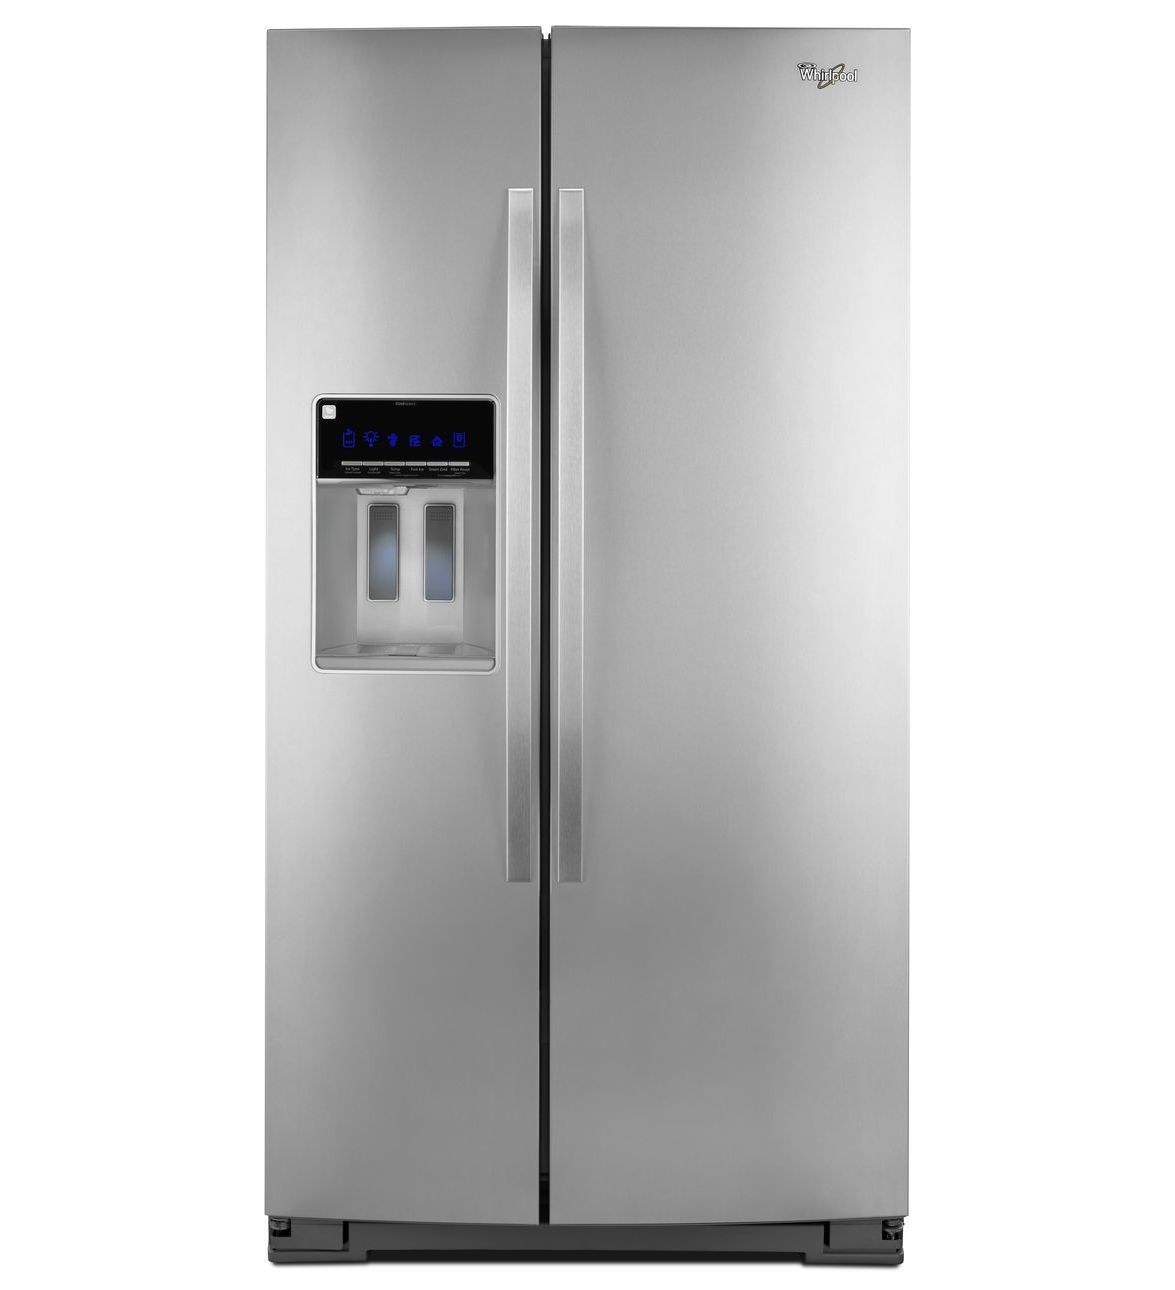 Whirlpool 174 Smart Side By Side Refrigerator With 6th Sense